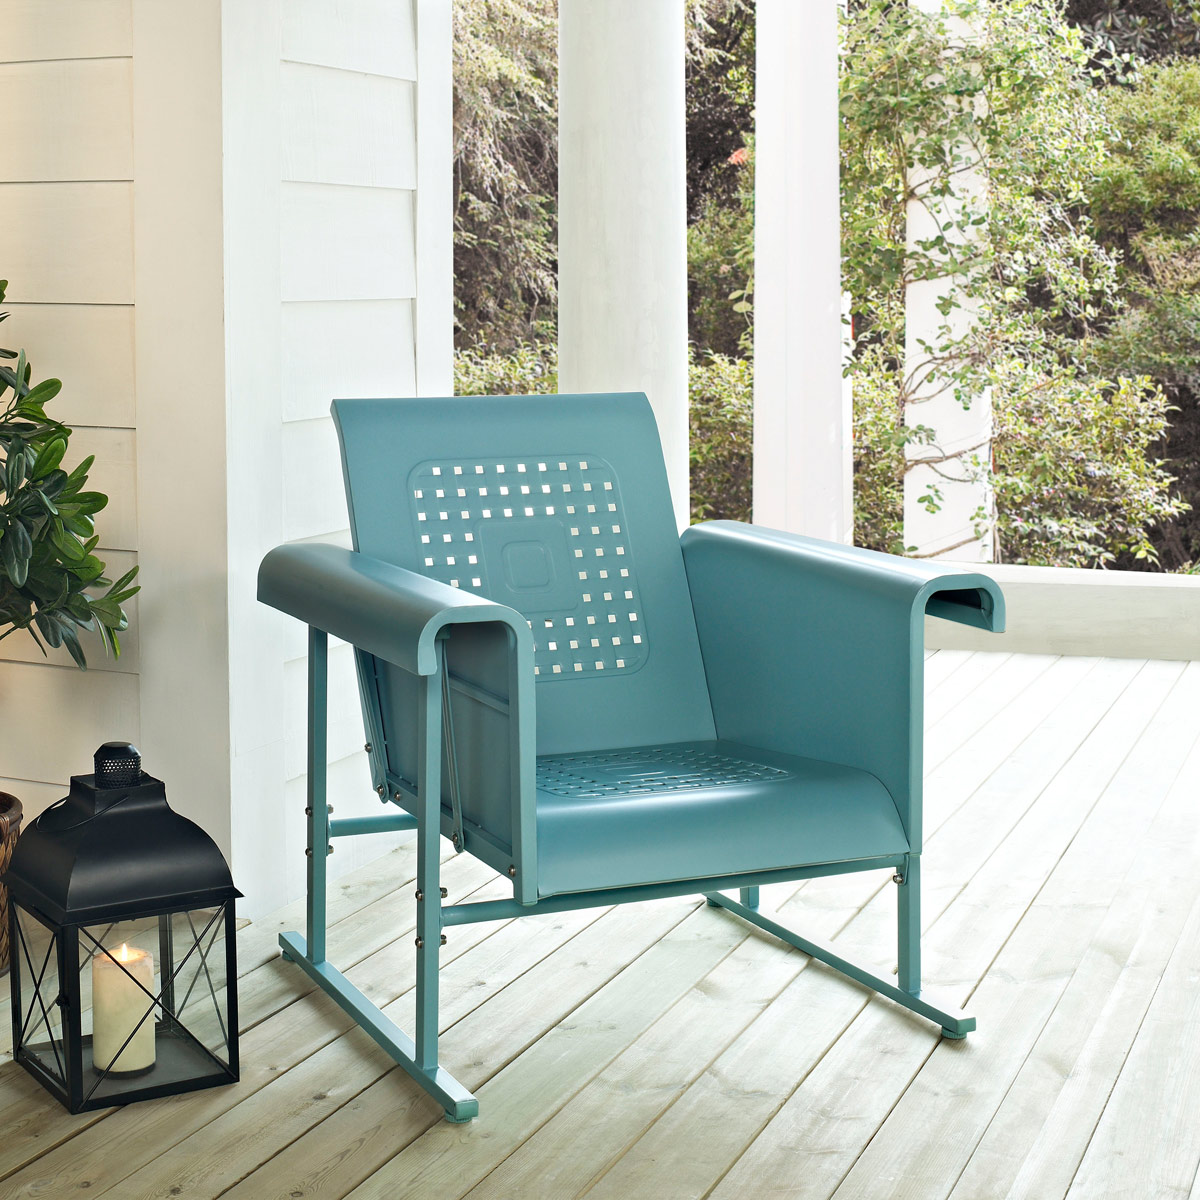 Merveilleux Crosley Veranda Single Outdoor Glider Chair In Caribbean Blue